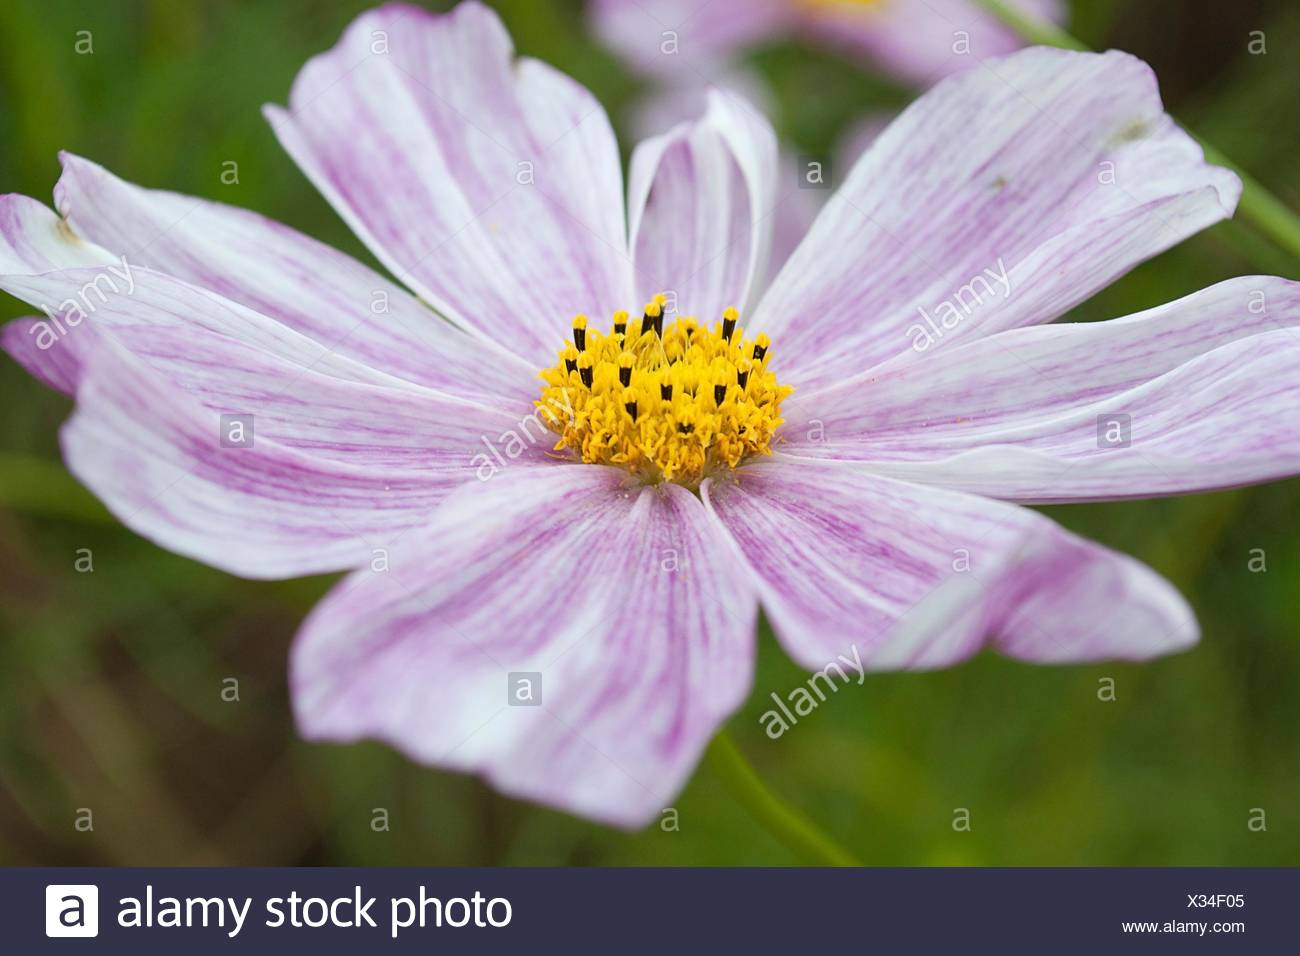 Cosmo cosmos flower stock photos cosmo cosmos flower stock images a pink and white streaked cosmo hybrid stock image mightylinksfo